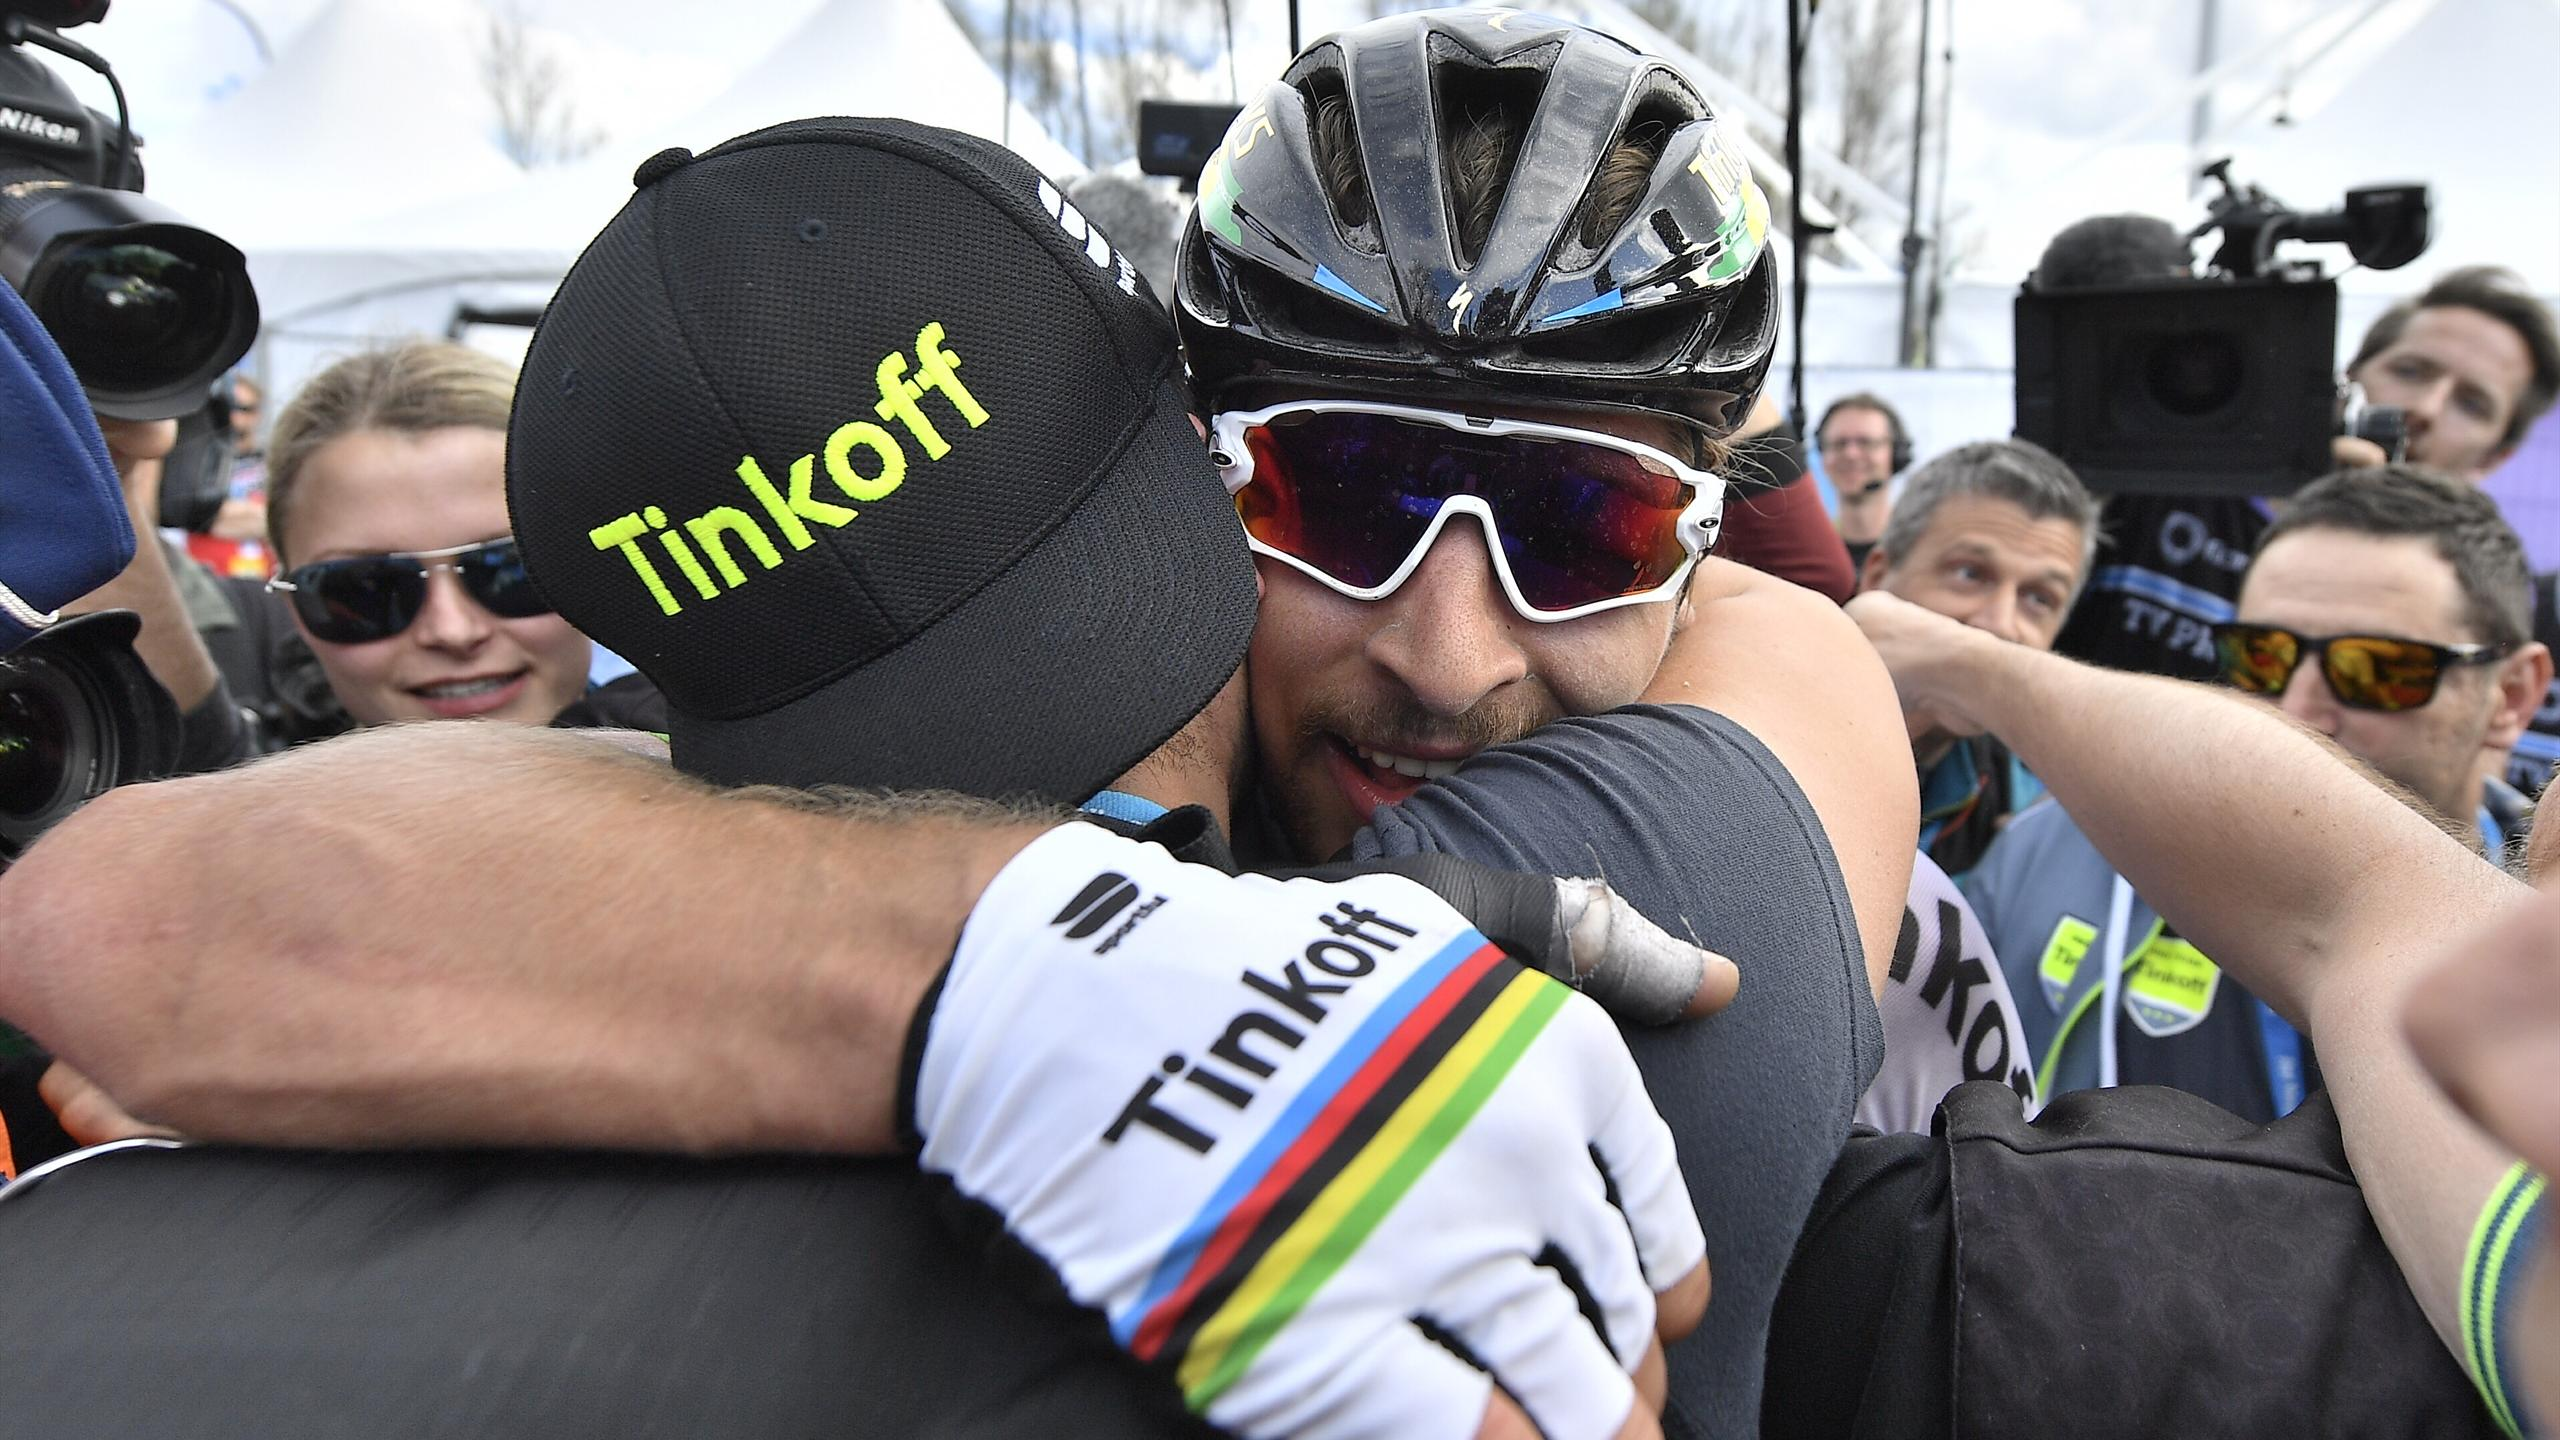 Slovakian world champion Peter Sagan (team Tinkoff) celebrates after winning the 100th edition of the 'Ronde van Vlaanderen - Tour des Flandres